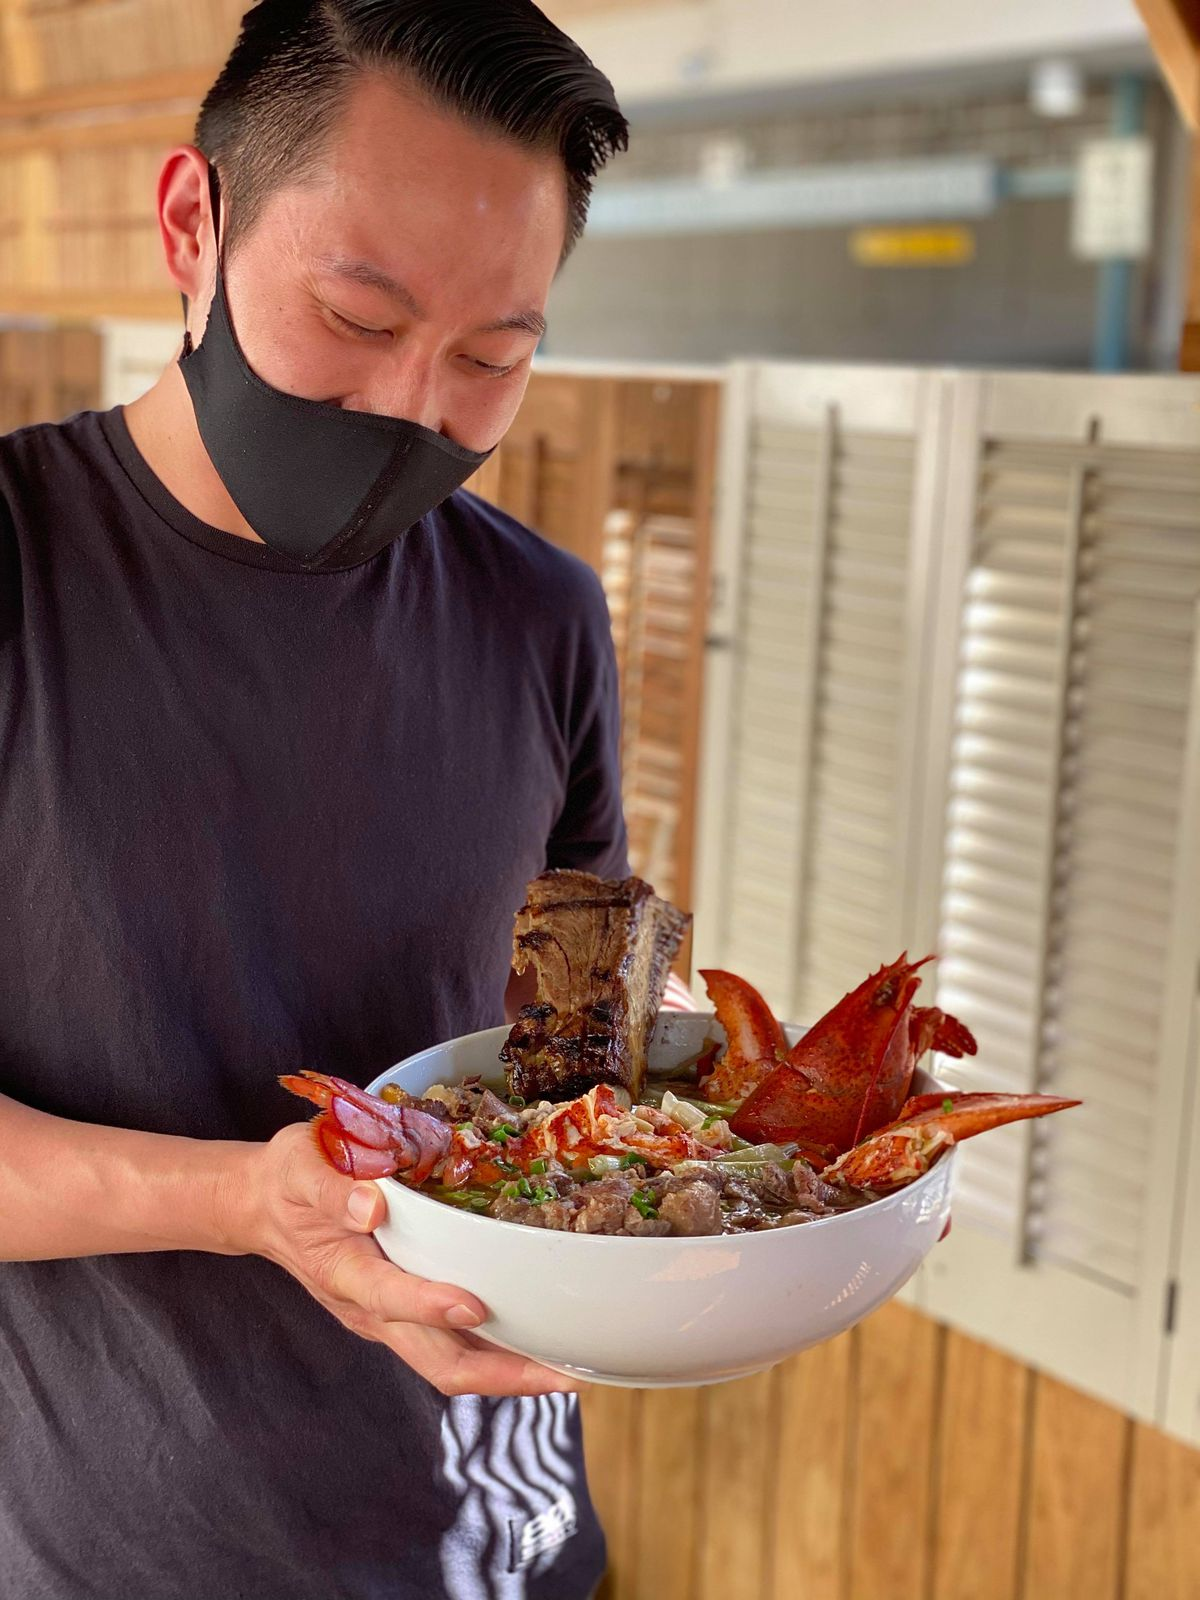 Gao Viet Kitchen owner and chef Viet Nguyen with a bowl of pho topped with a whole Maine lobster